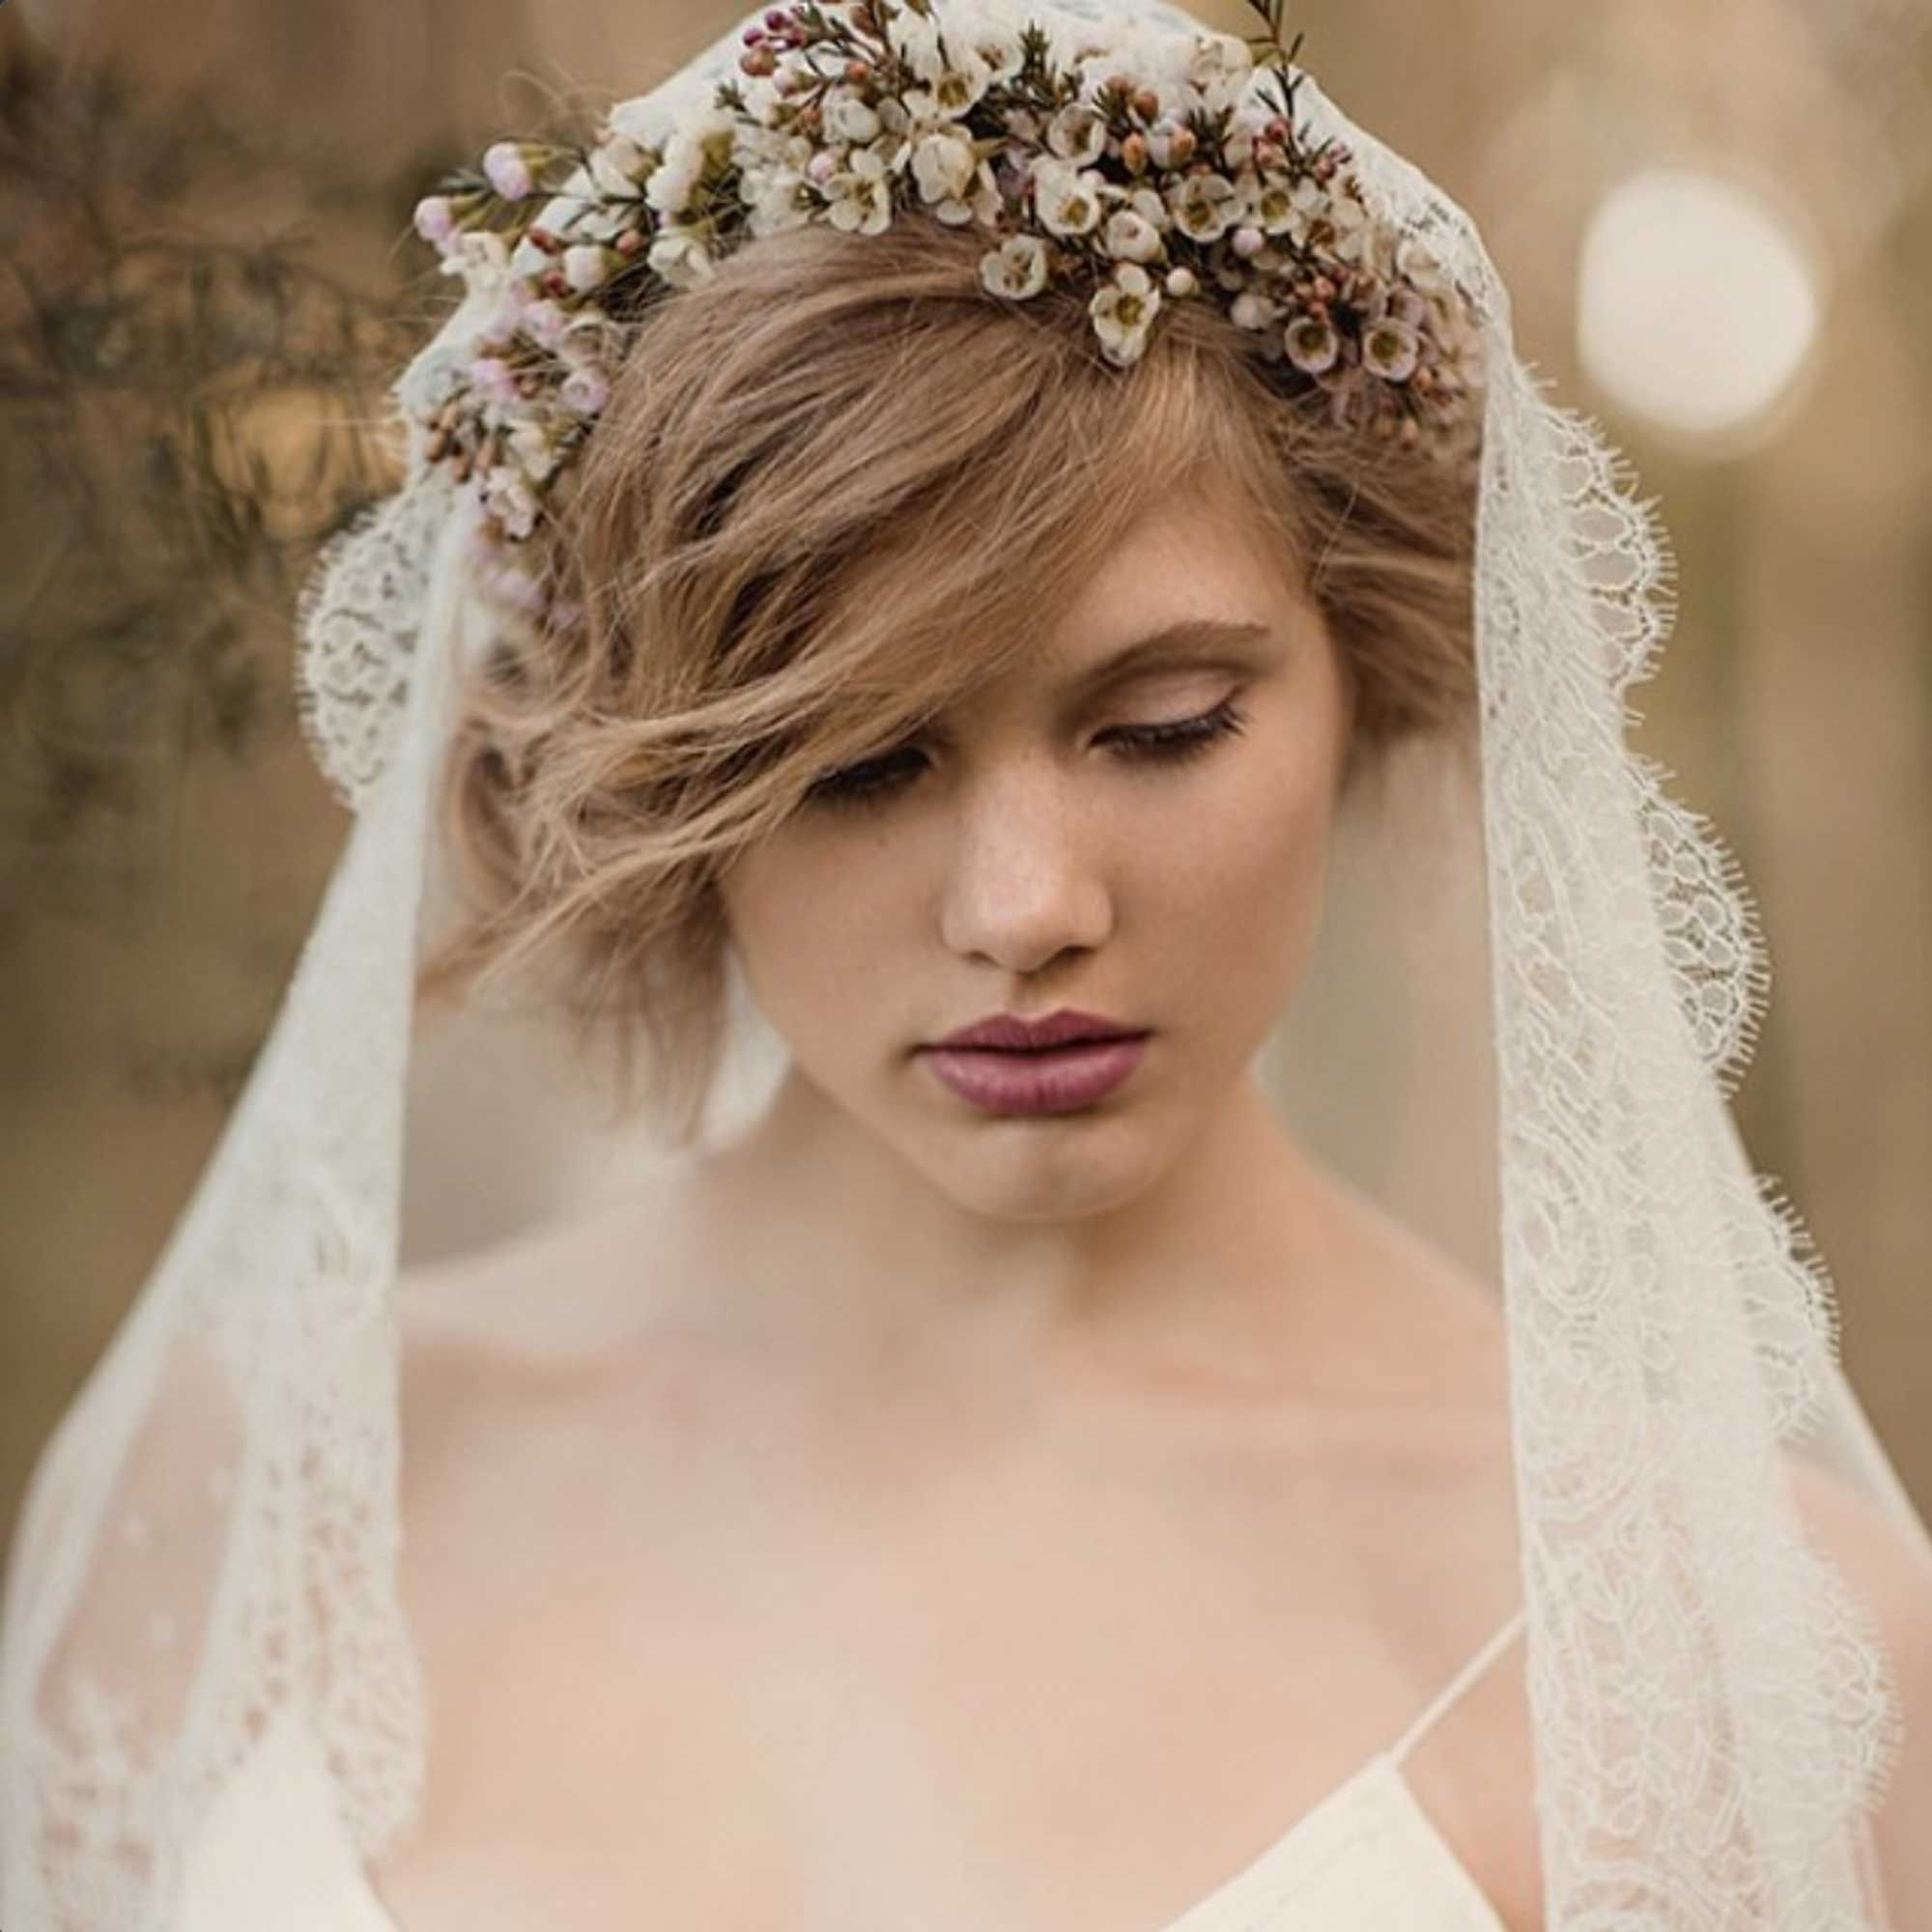 Wedding Hairstyle Crown: 36 Stunning Wedding Veils That Will Leave You Speechless